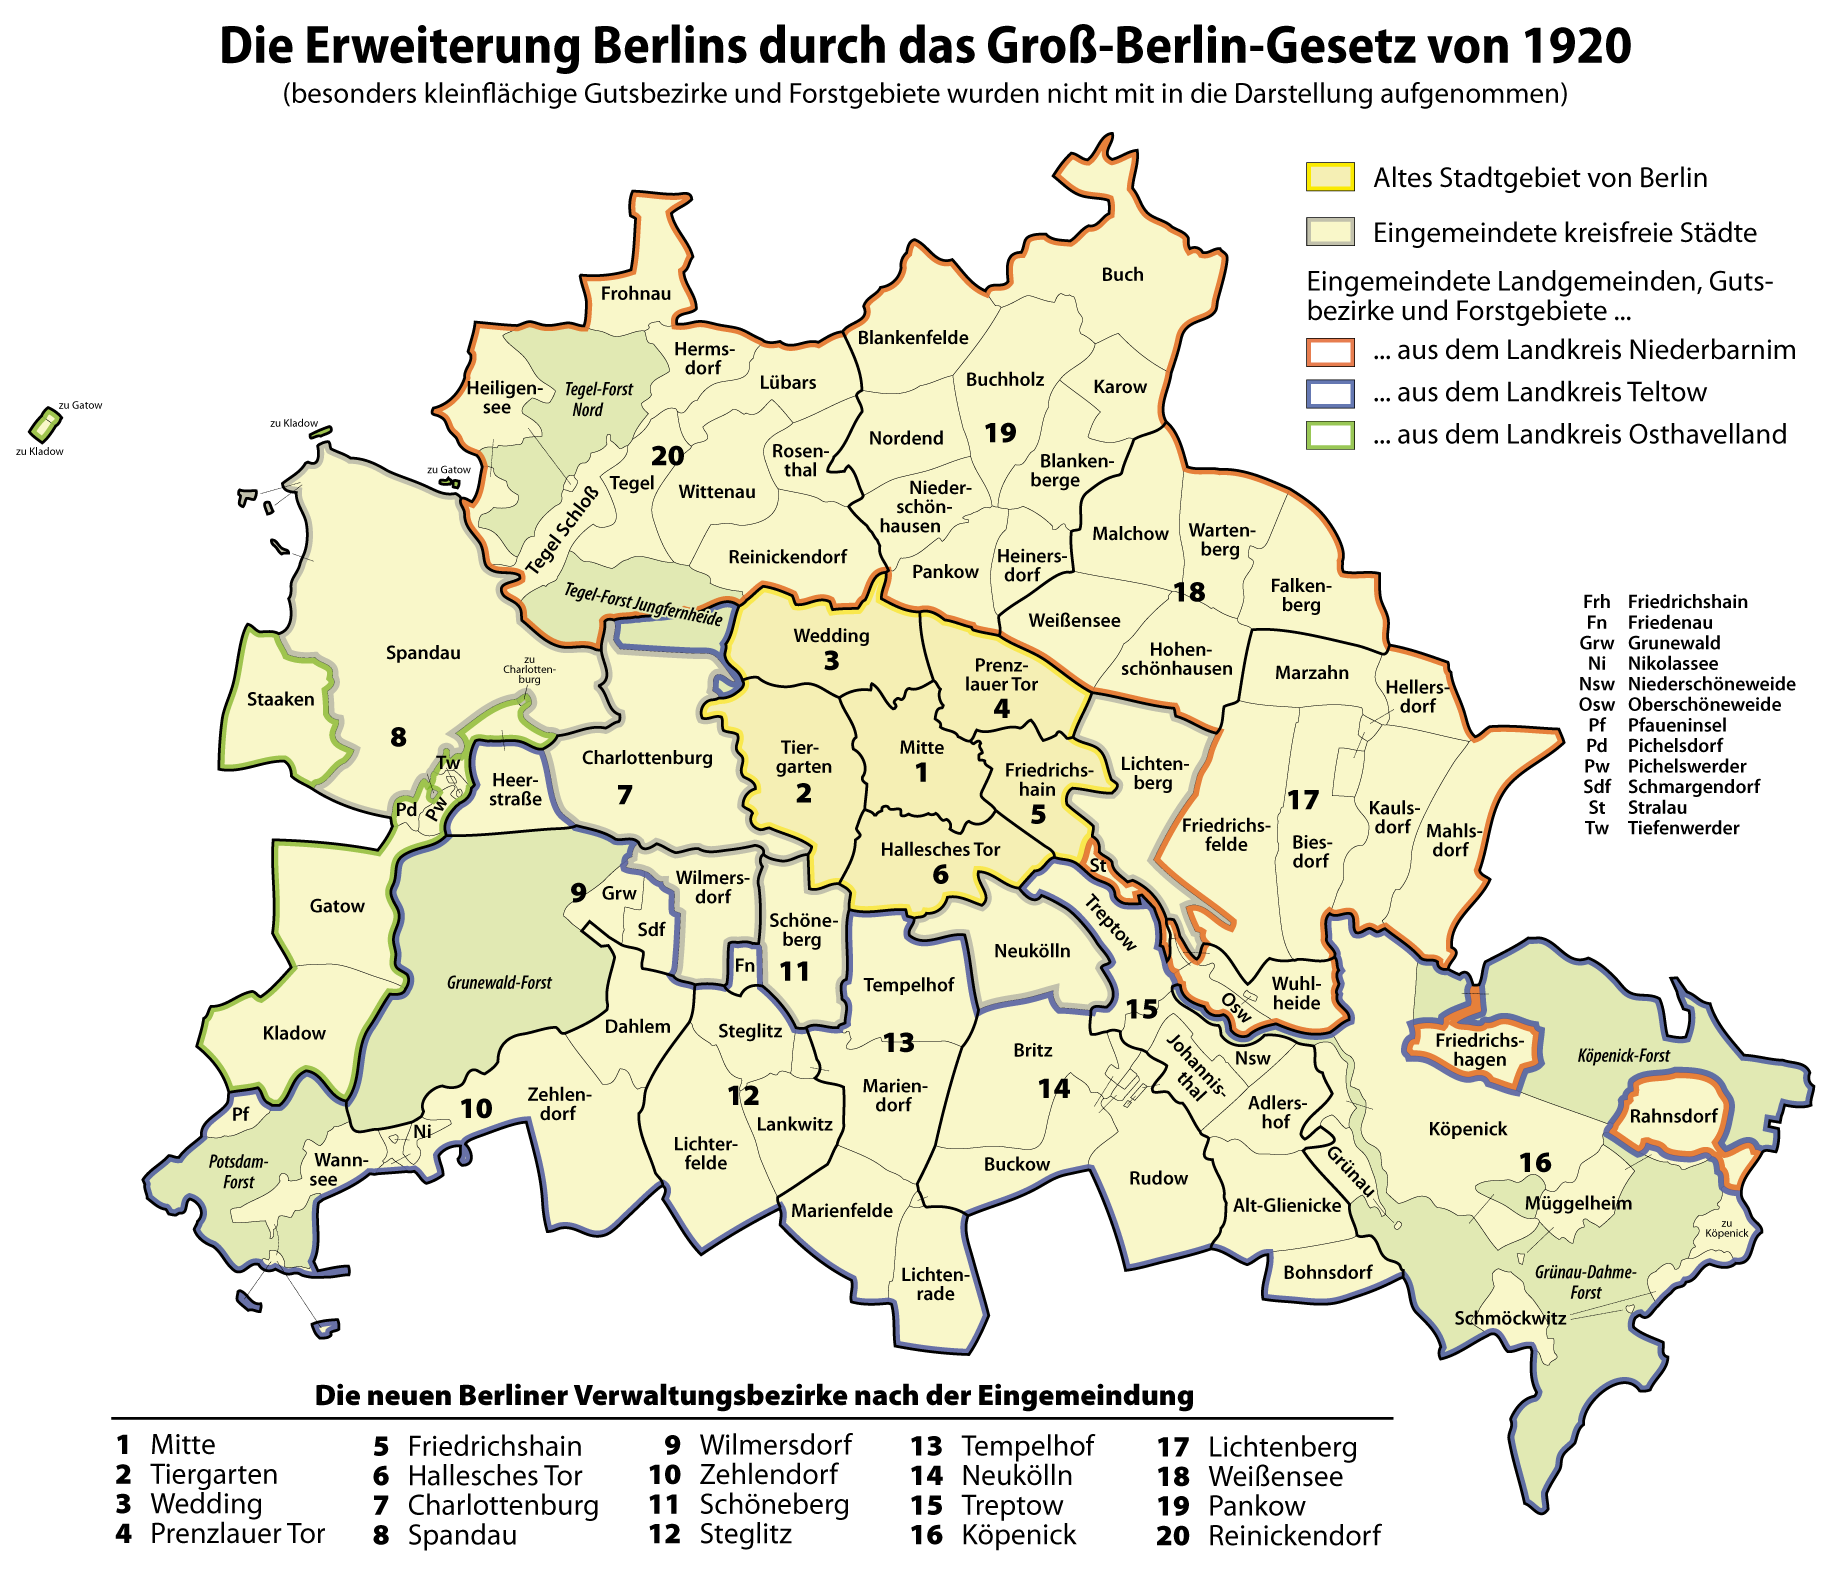 Territories merged into Berlin in 1920